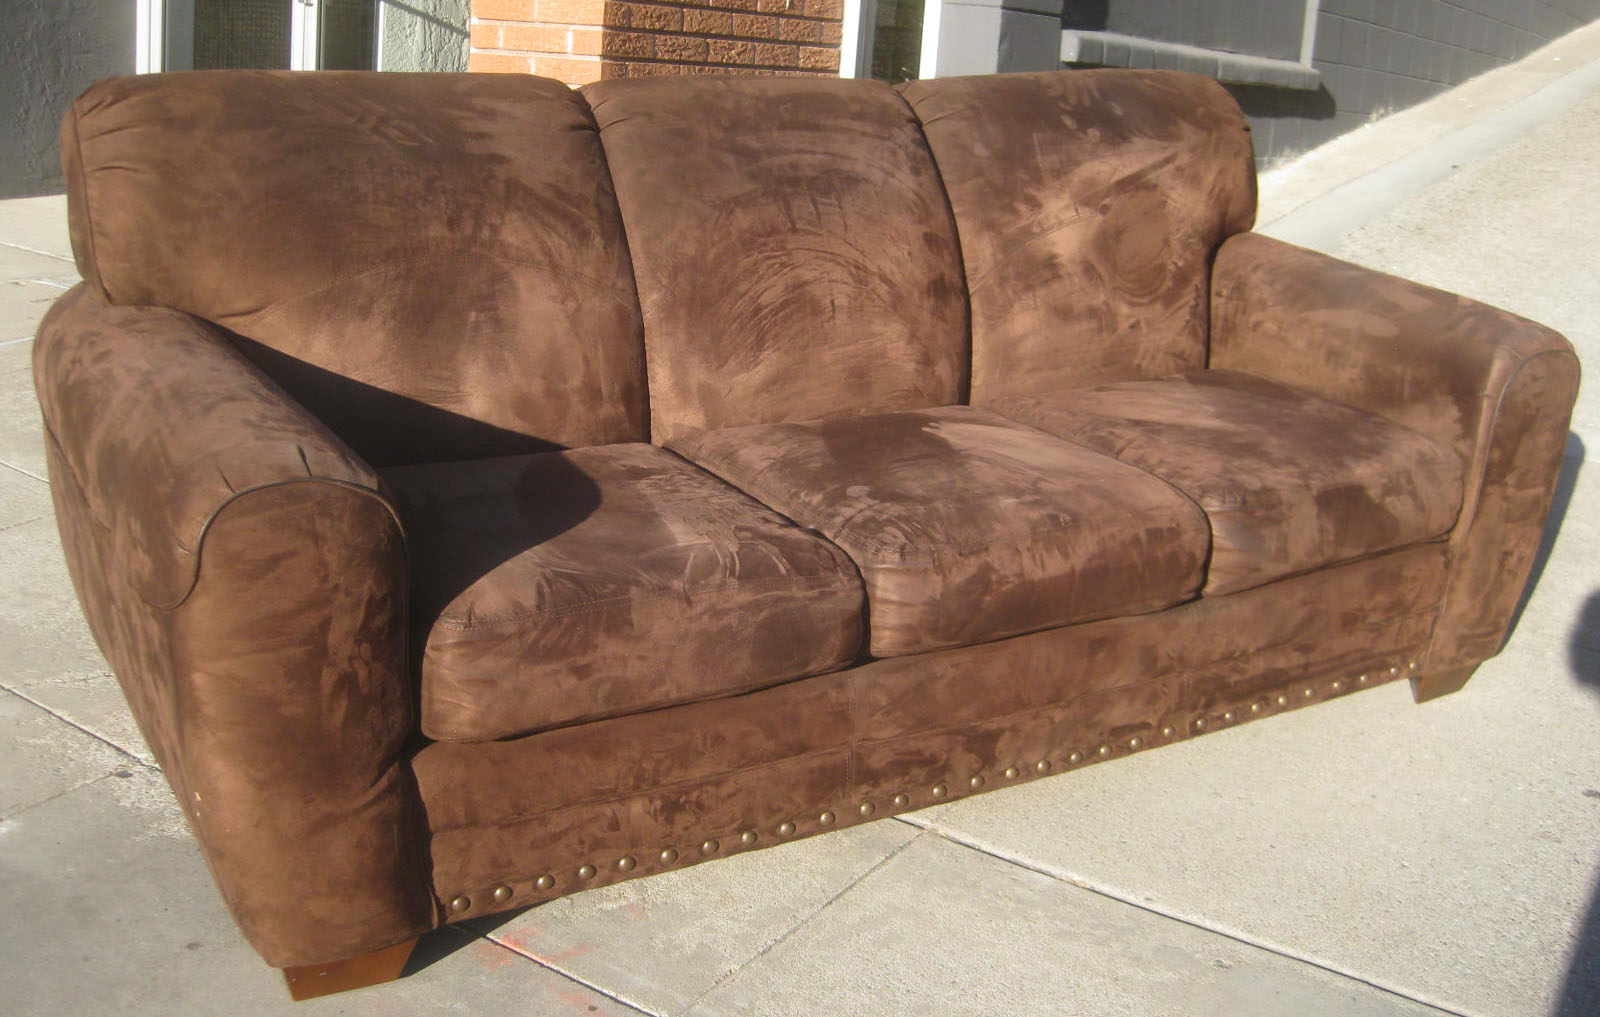 spray paint for leather sofa purple velvet uhuru furniture and collectibles sold chocolate